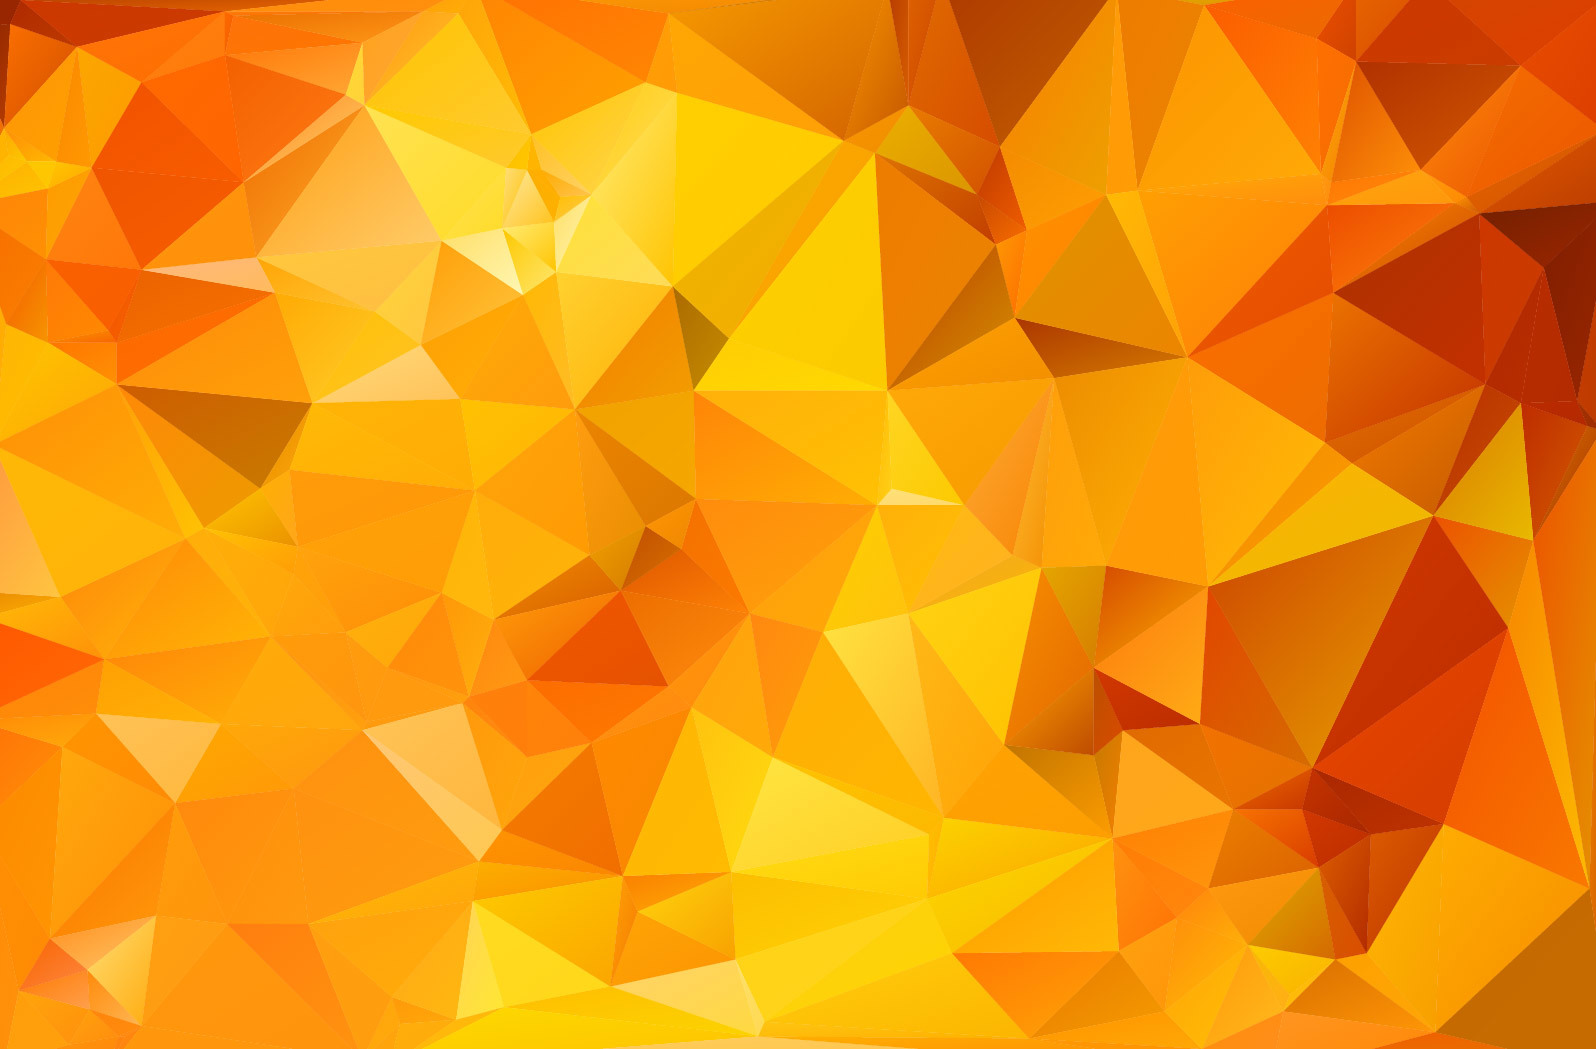 download Orange Geometric Polygonal Triangle Texture Vector 1596x1049